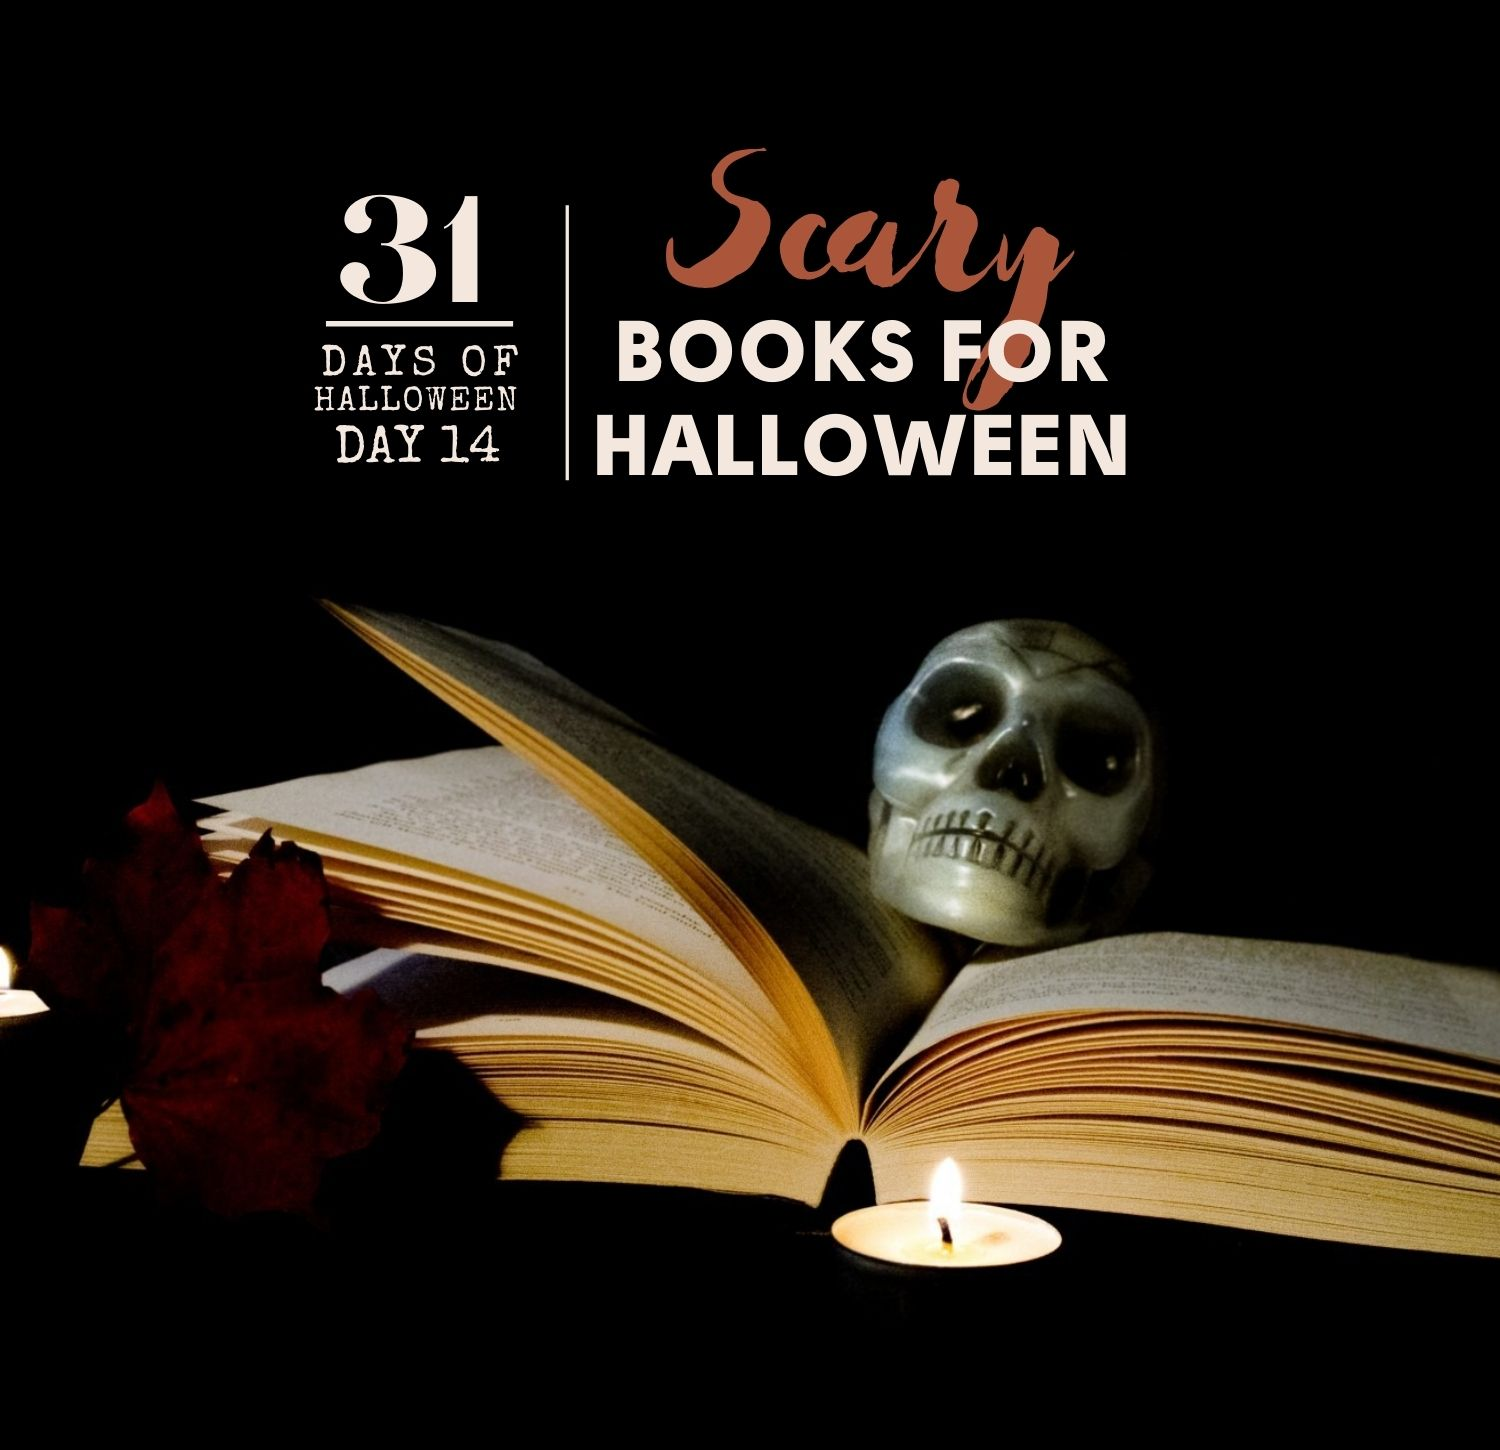 31 Days of Halloween: Day #14 … Scary Books for Halloween